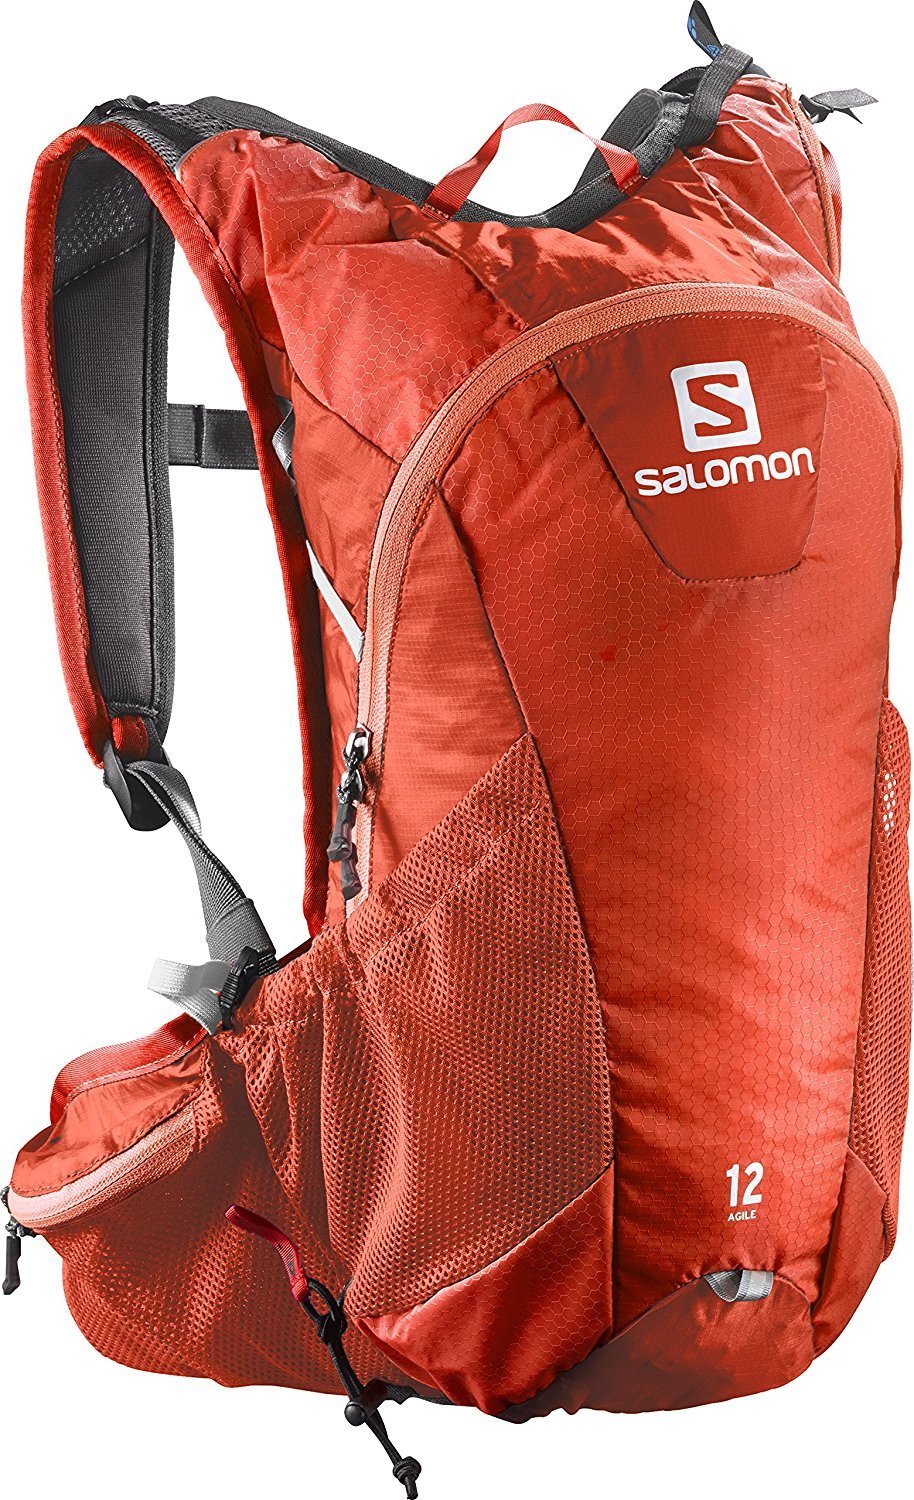 Salomon Bright Agile 12 Set Backpack Red/White [並行輸入品] B077QG2LLK